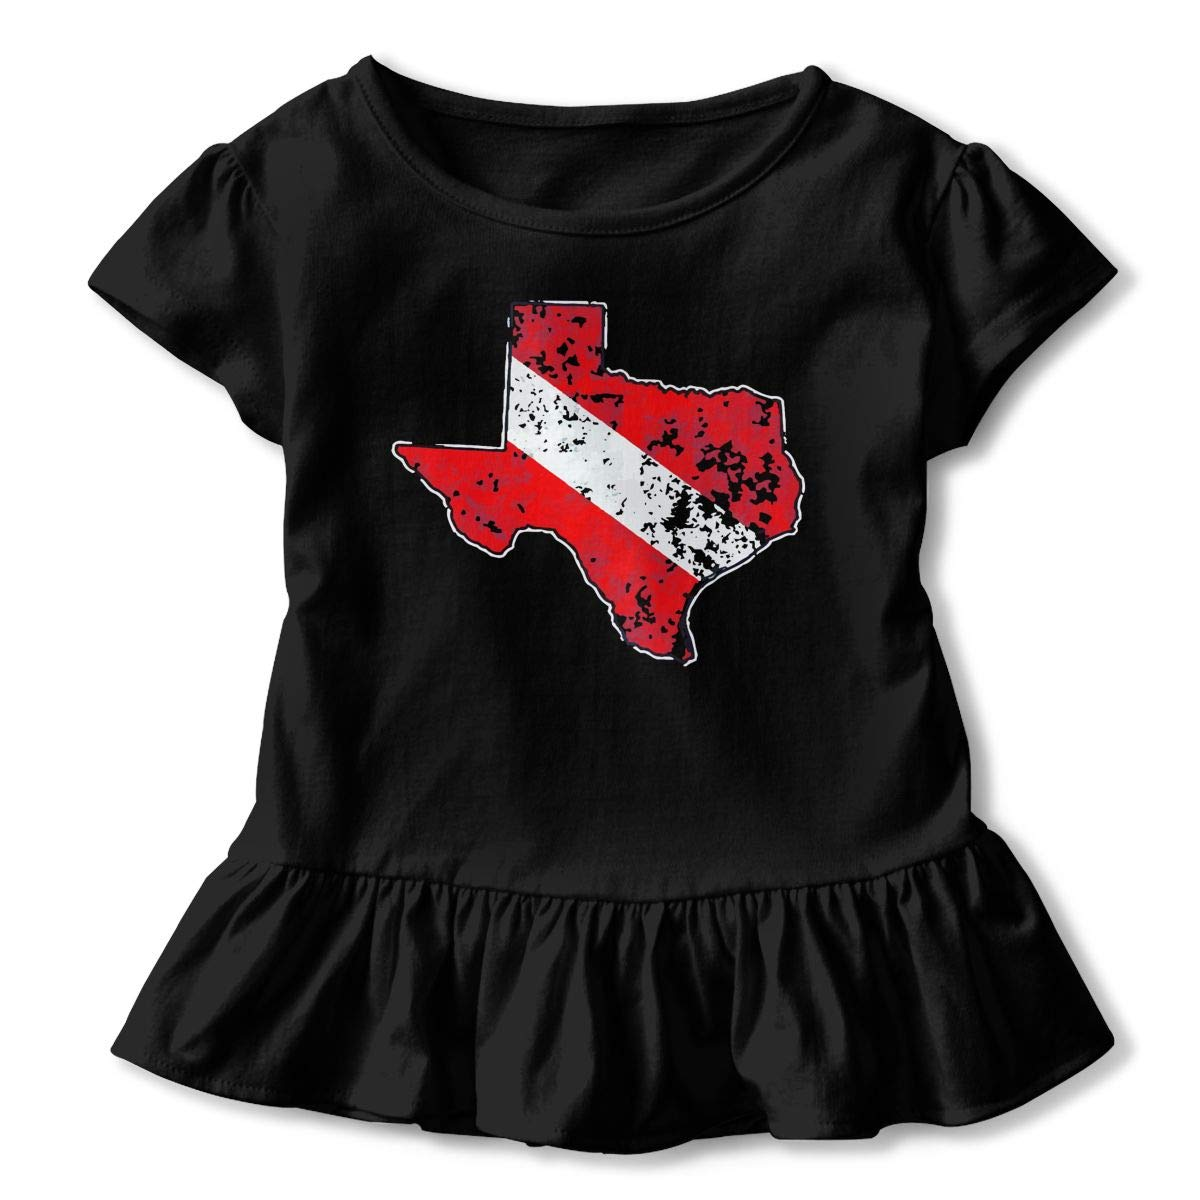 2-Pack Cotton Tee Vintage Texas Scuba Dive Flag Map Diving Diver Baby Girls Short Sleeve Ruffles T-Shirt Tops